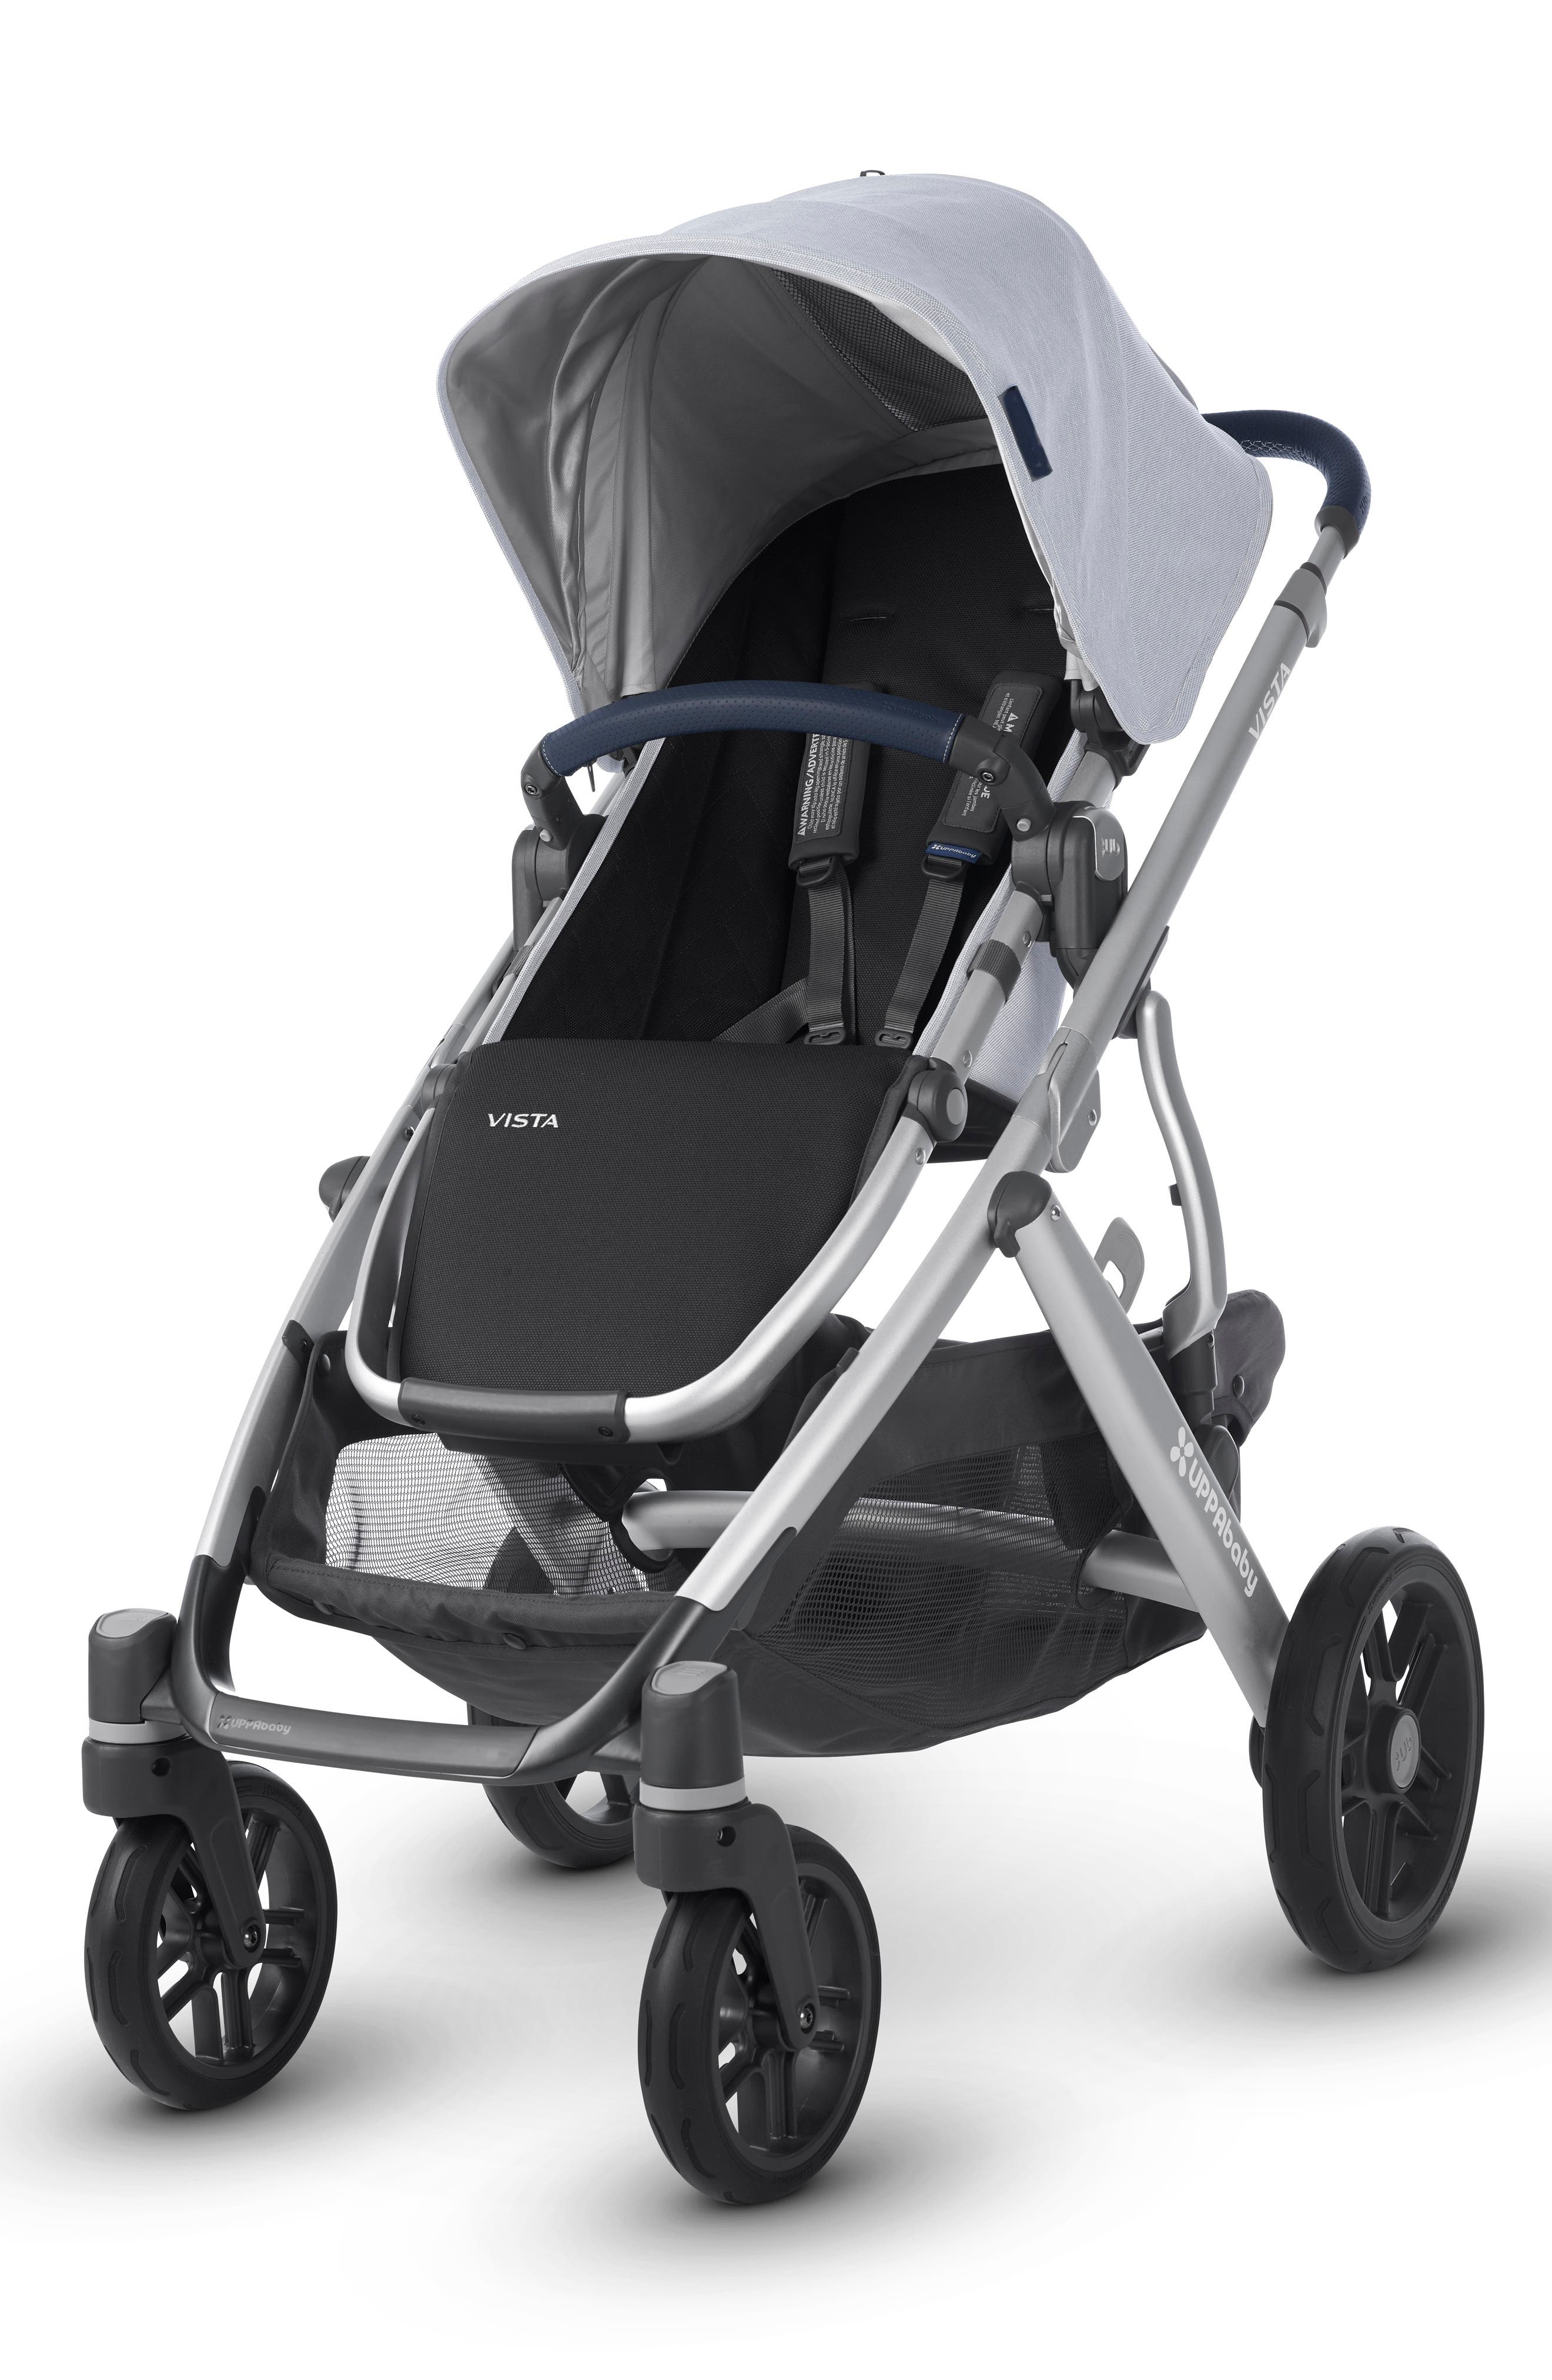 UPPABABY VISTA Aluminum Frame Convertible Complete Stroller with Leather Trim, Main, color, WILLIAM BLUE/ SILVER